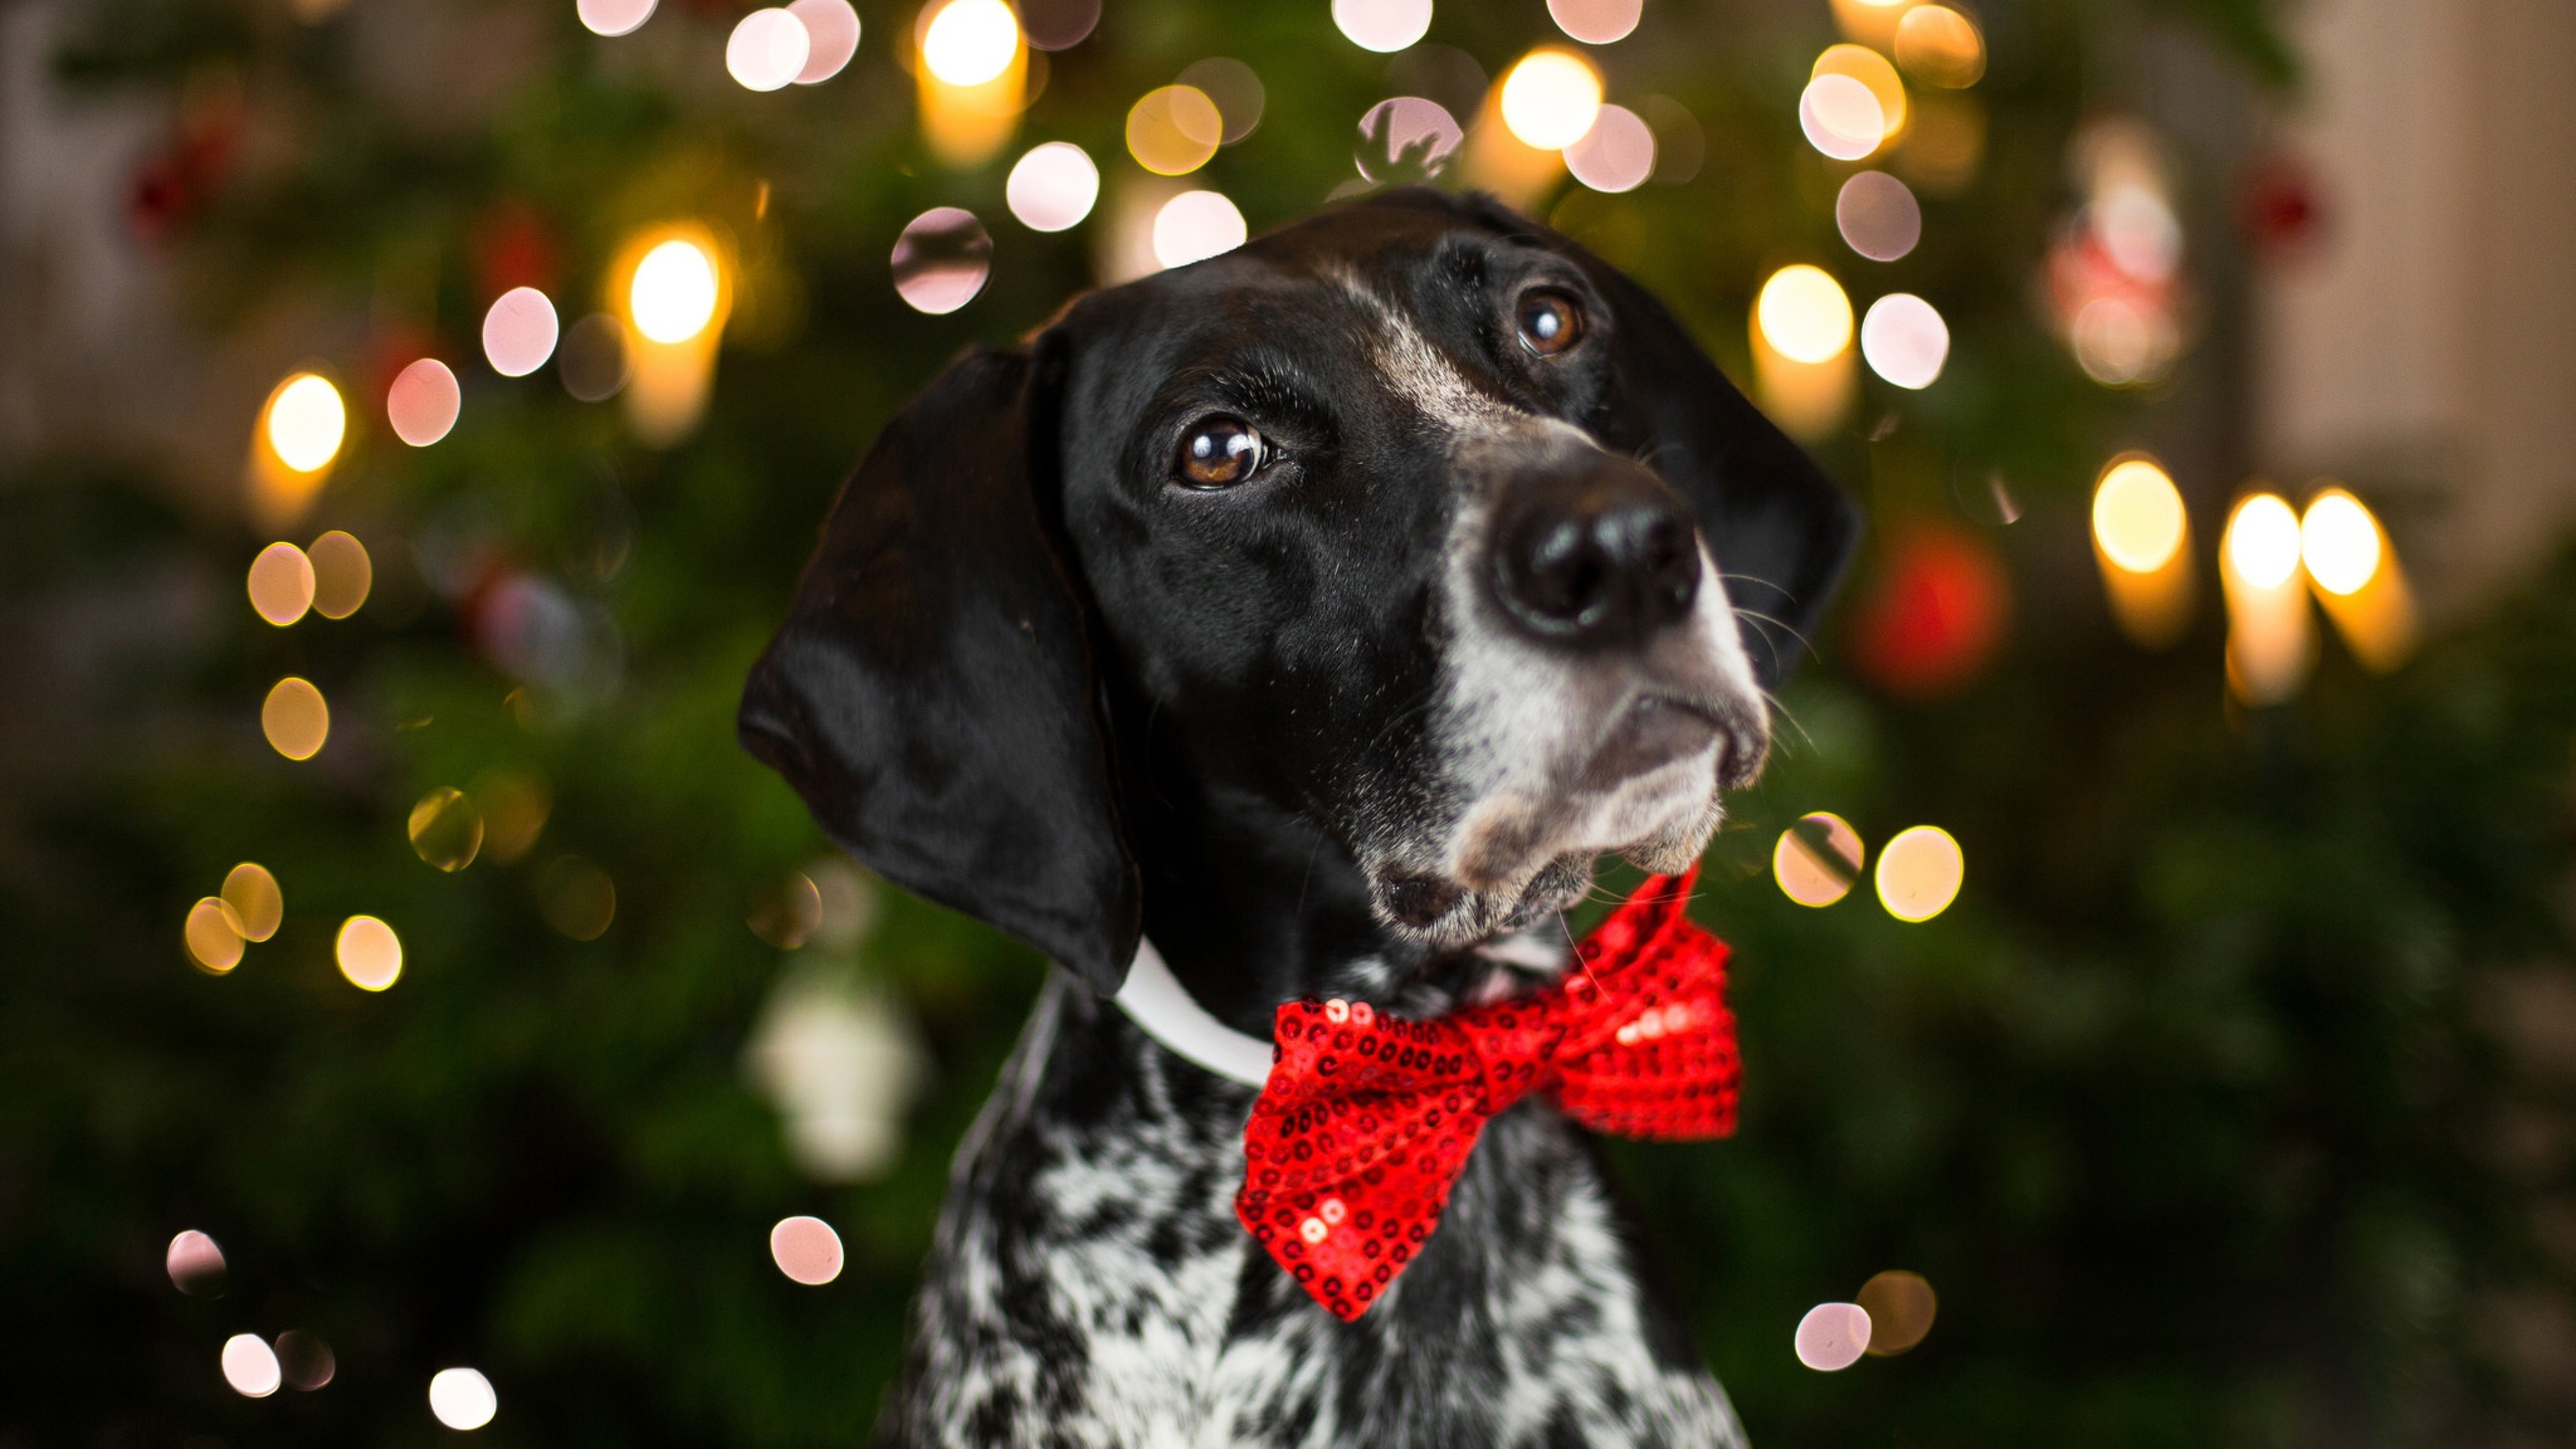 Wallpaper Purebred dog with a red bow on the neck